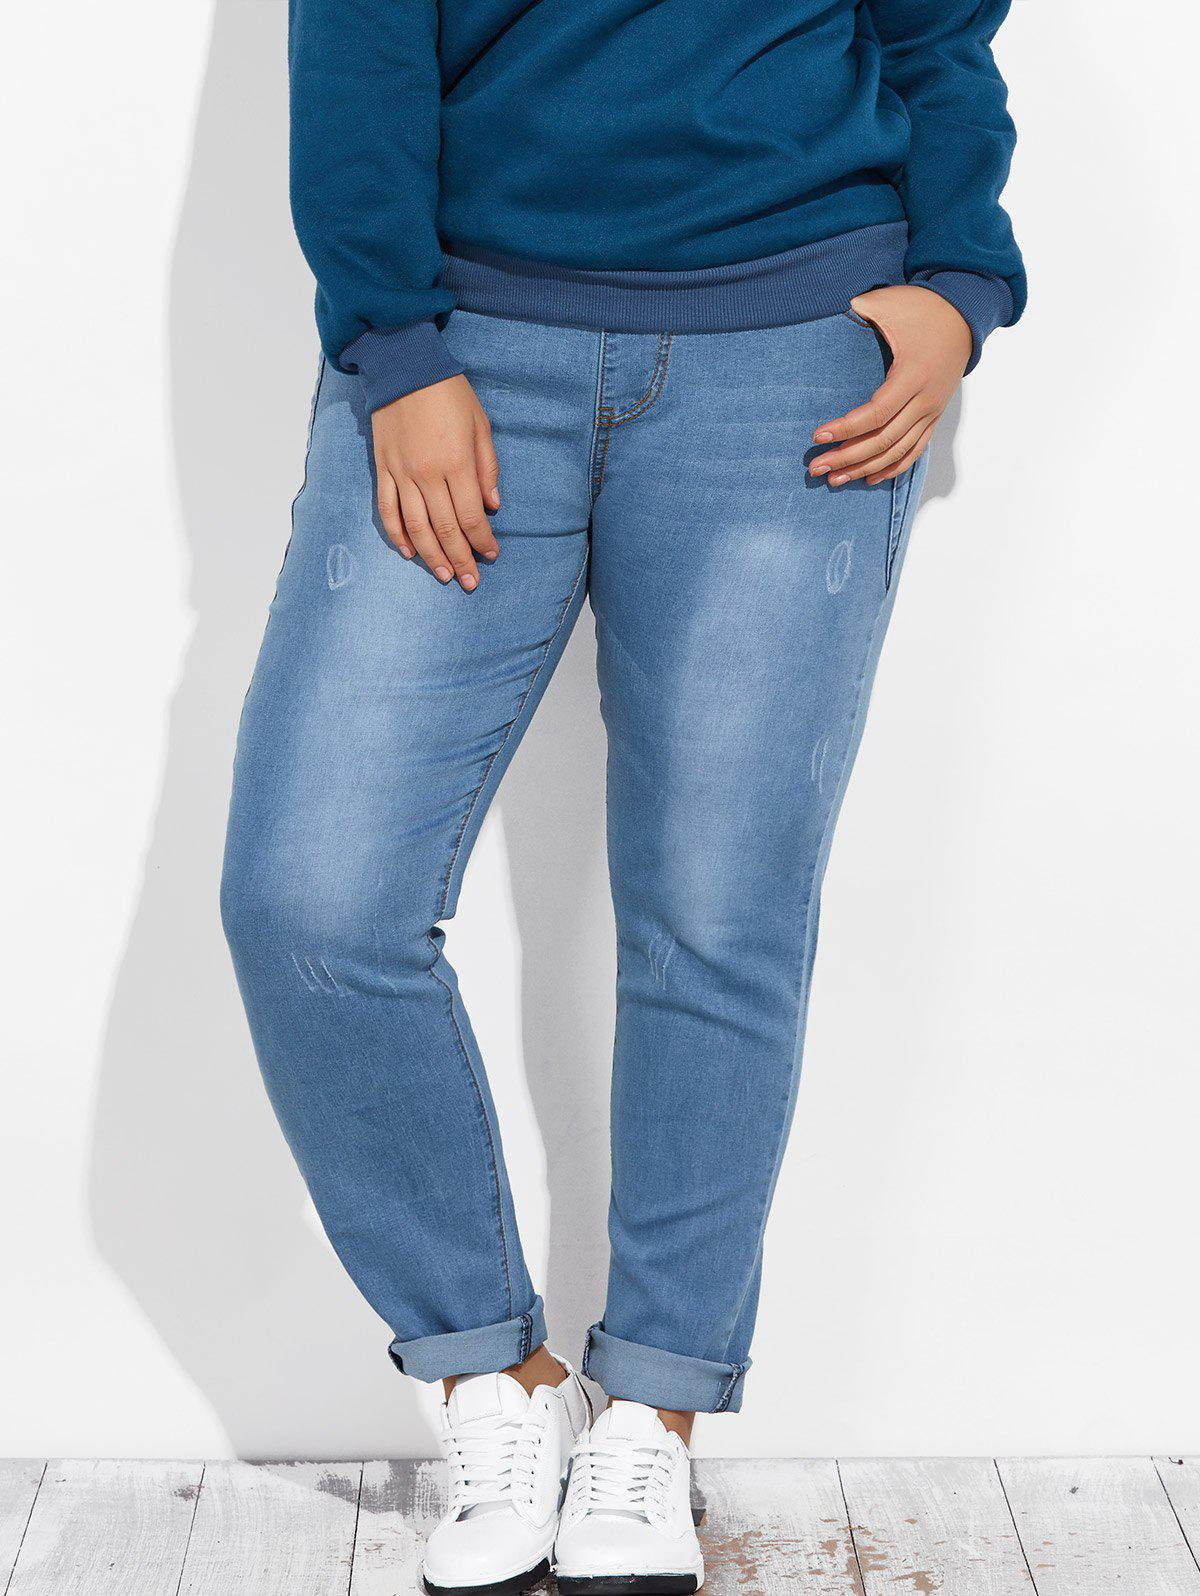 Drawstring Tapered Denim Jogger PantsWOMEN<br><br>Size: 4XL; Color: LIGHT BLUE; Style: Fashion; Length: Normal; Material: Polyester; Fit Type: Skinny; Waist Type: Mid; Closure Type: Elastic Waist; Pattern Type: Others; Pant Style: Pencil Pants; Weight: 0.350kg; Package Contents: 1 x Jeans;